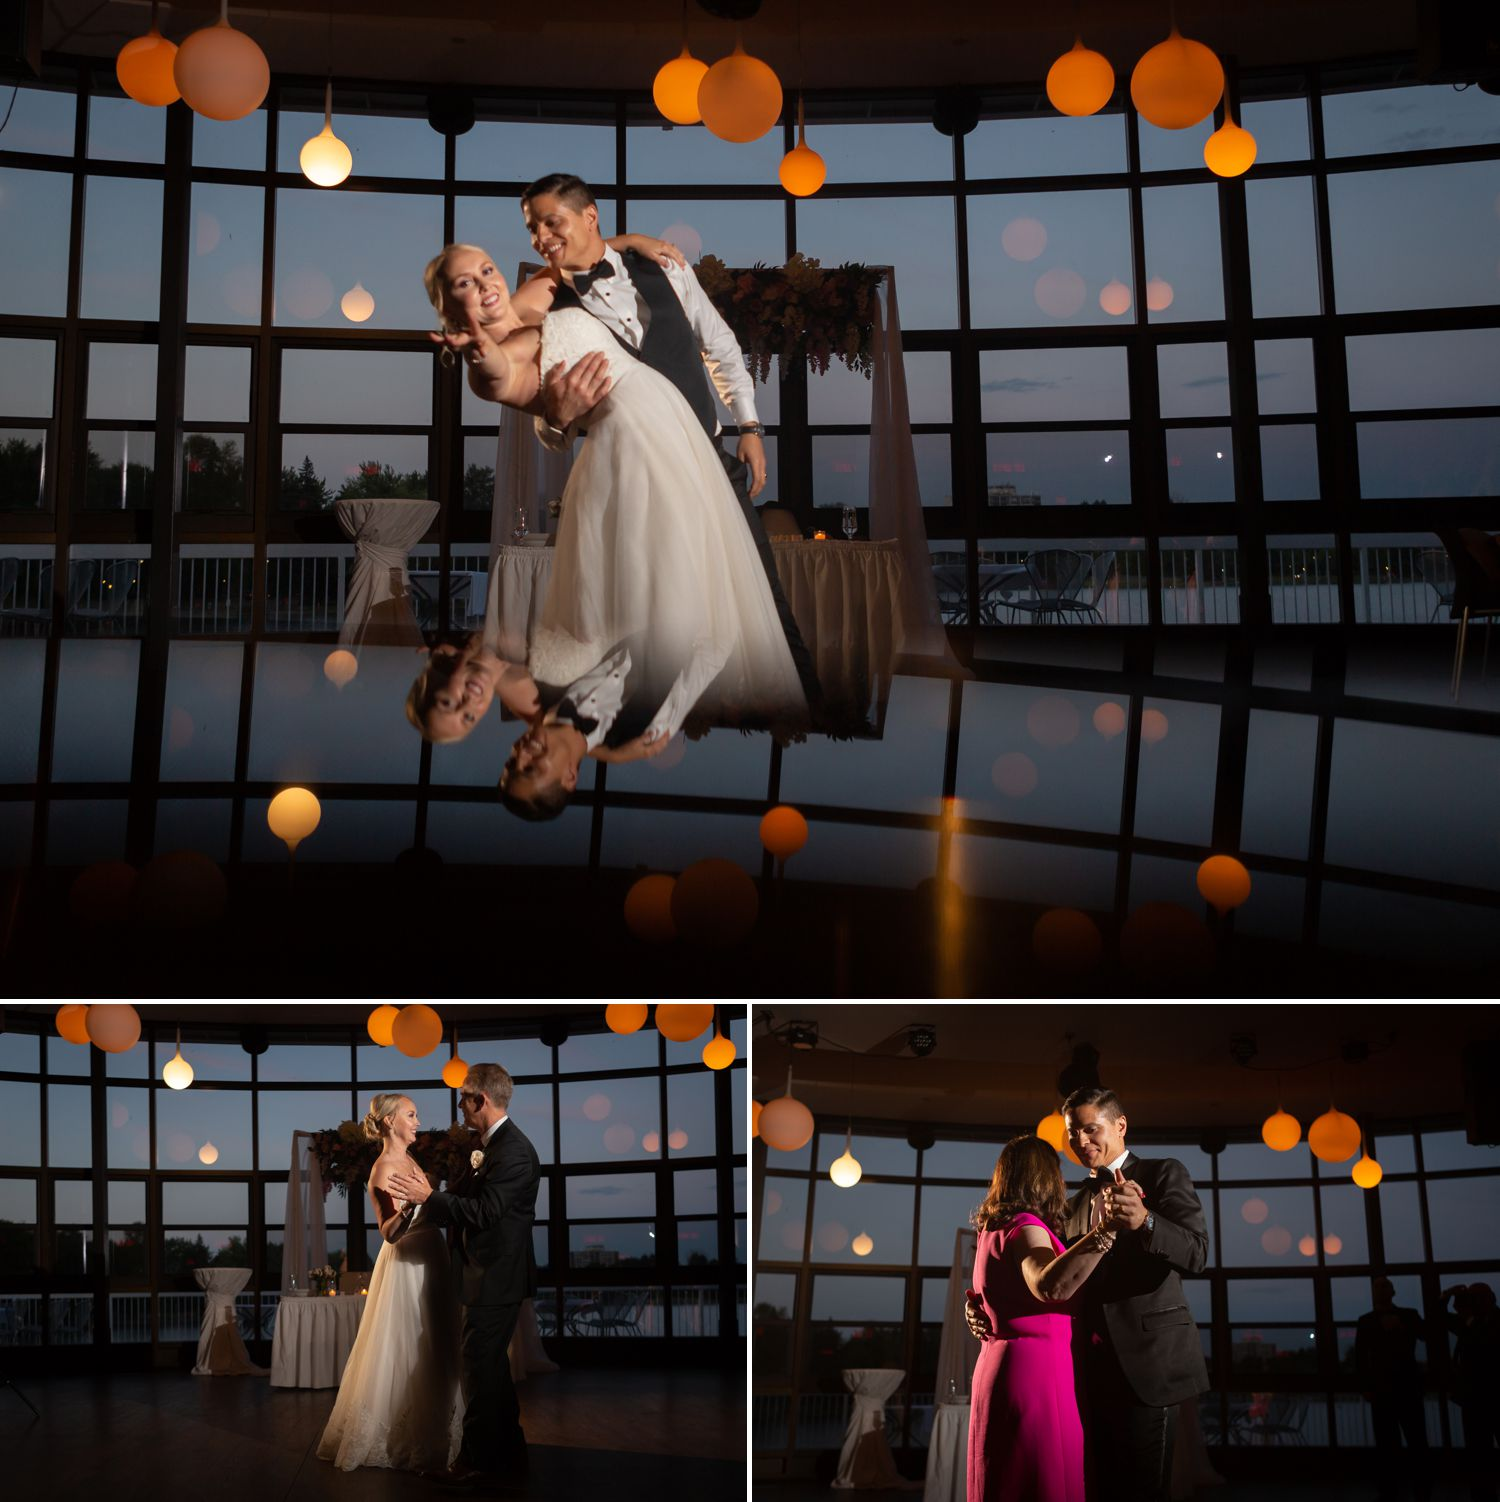 The bride and groom during their first dance at their wedding reception at Lago Bar & Grill in Ottawa